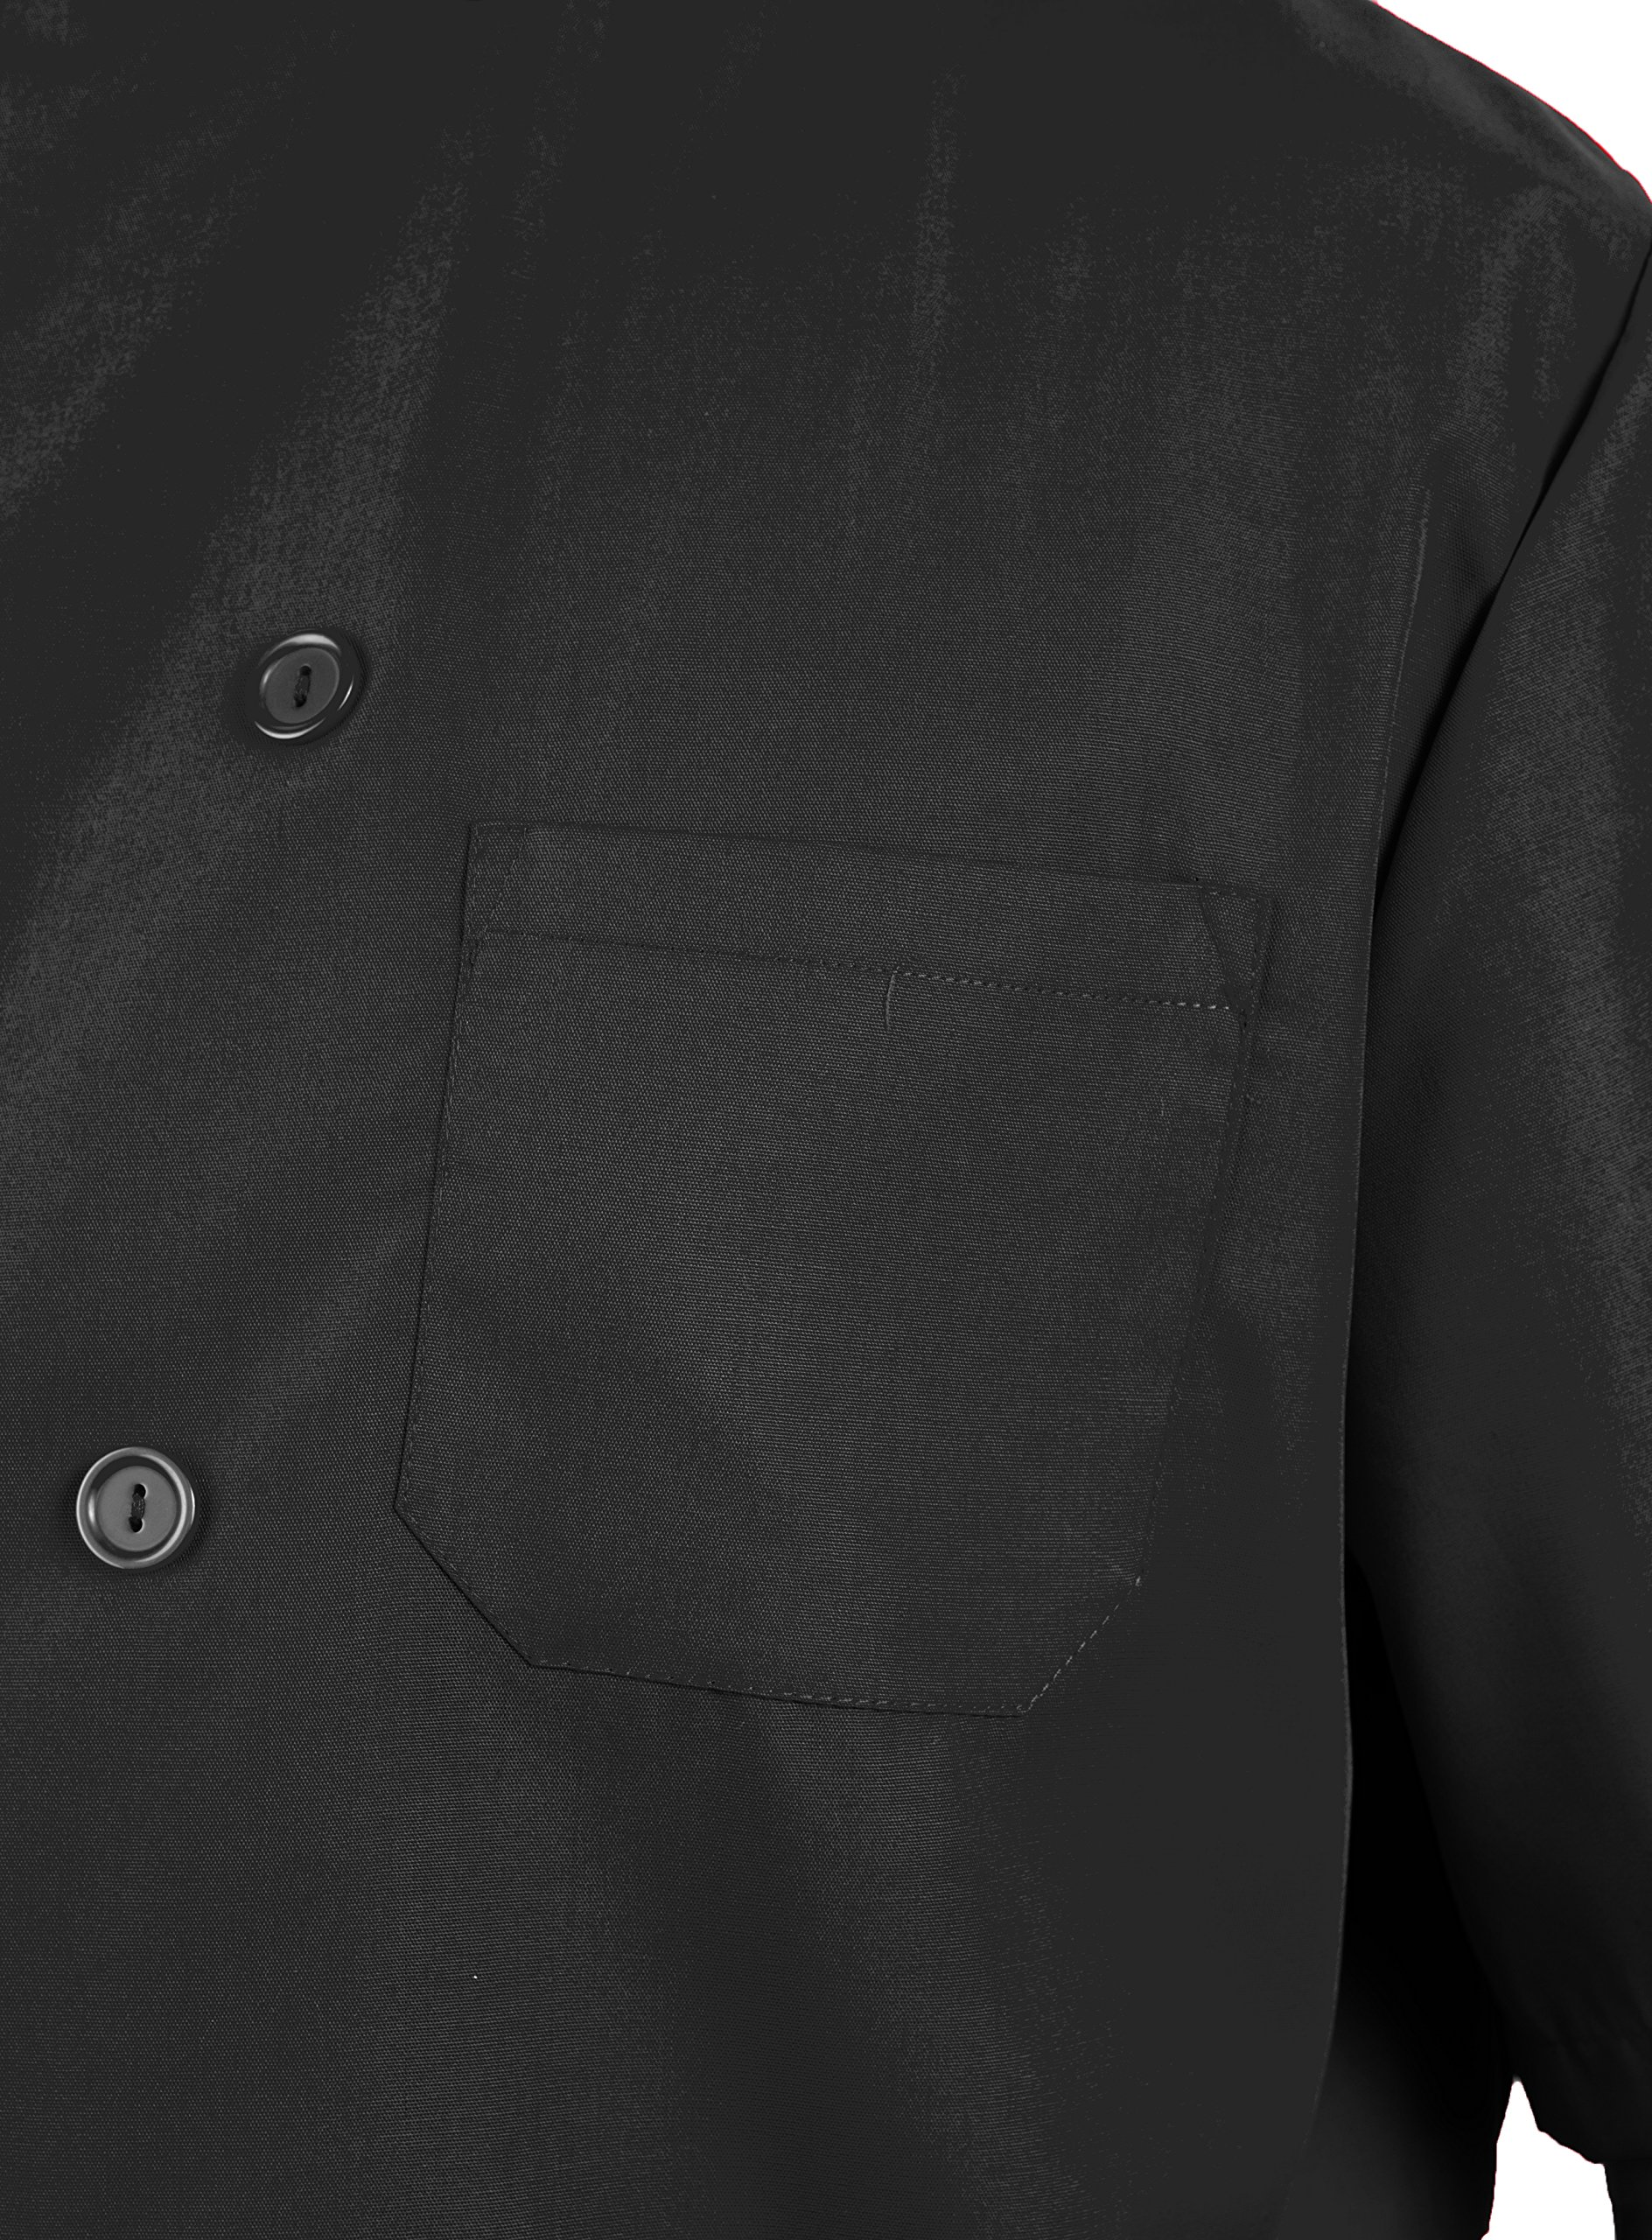 KNG Black Lightweight Short Sleeve Chef Coat by KNG (Image #4)